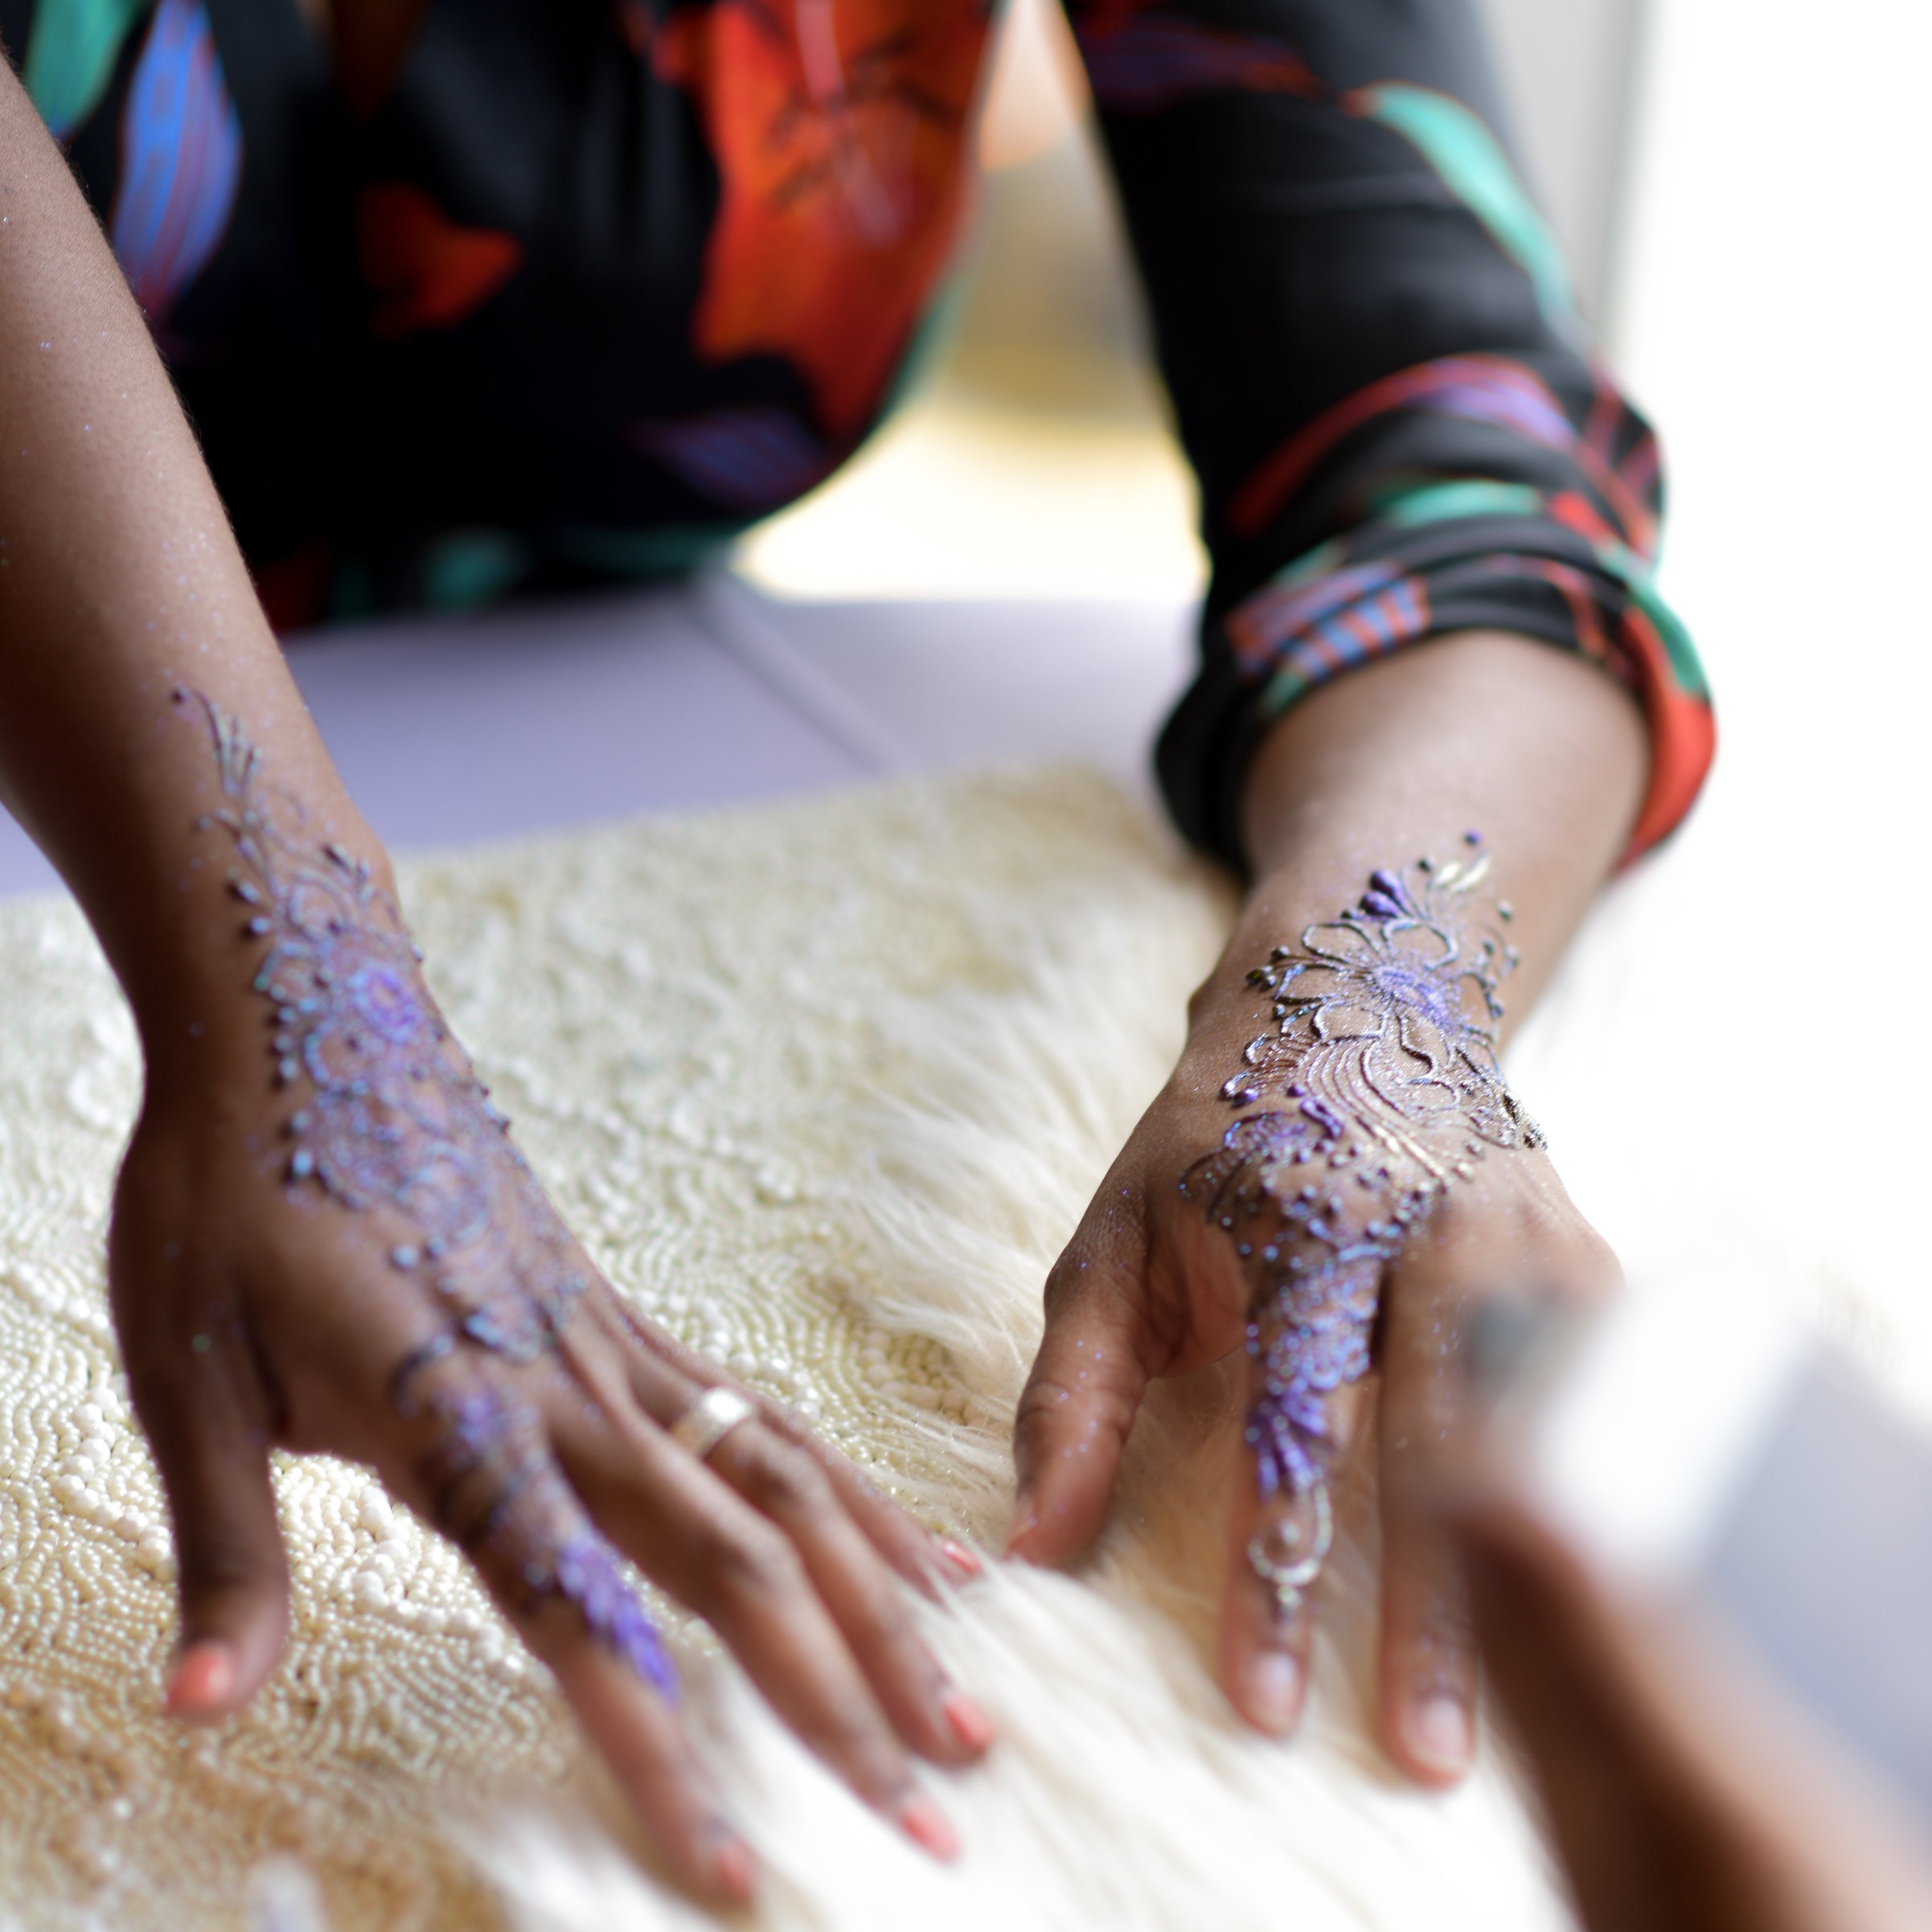 - Treat yourself and your guests to eye-catching, freehand henna designs. These walking favors will have people talking about your event long after the cake is cut and you've said your goodbyes.